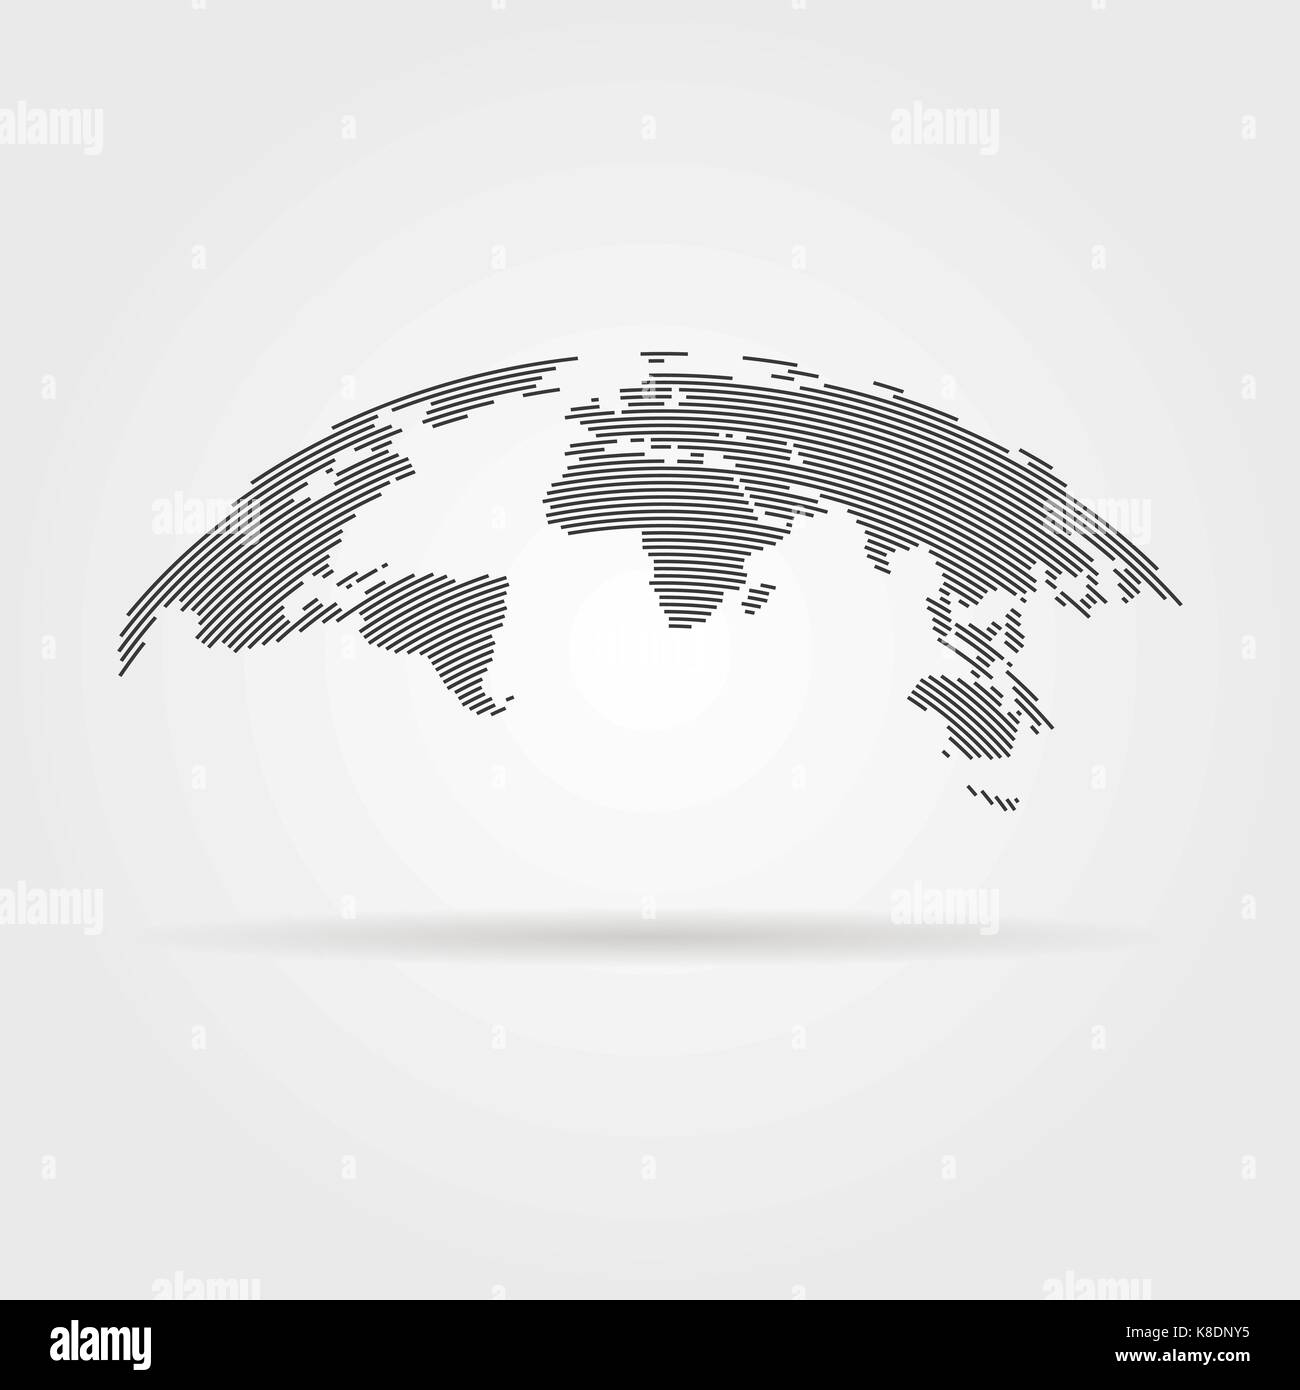 Simple world map stock photos simple world map stock images alamy simple black world map from thin line stock image gumiabroncs Choice Image